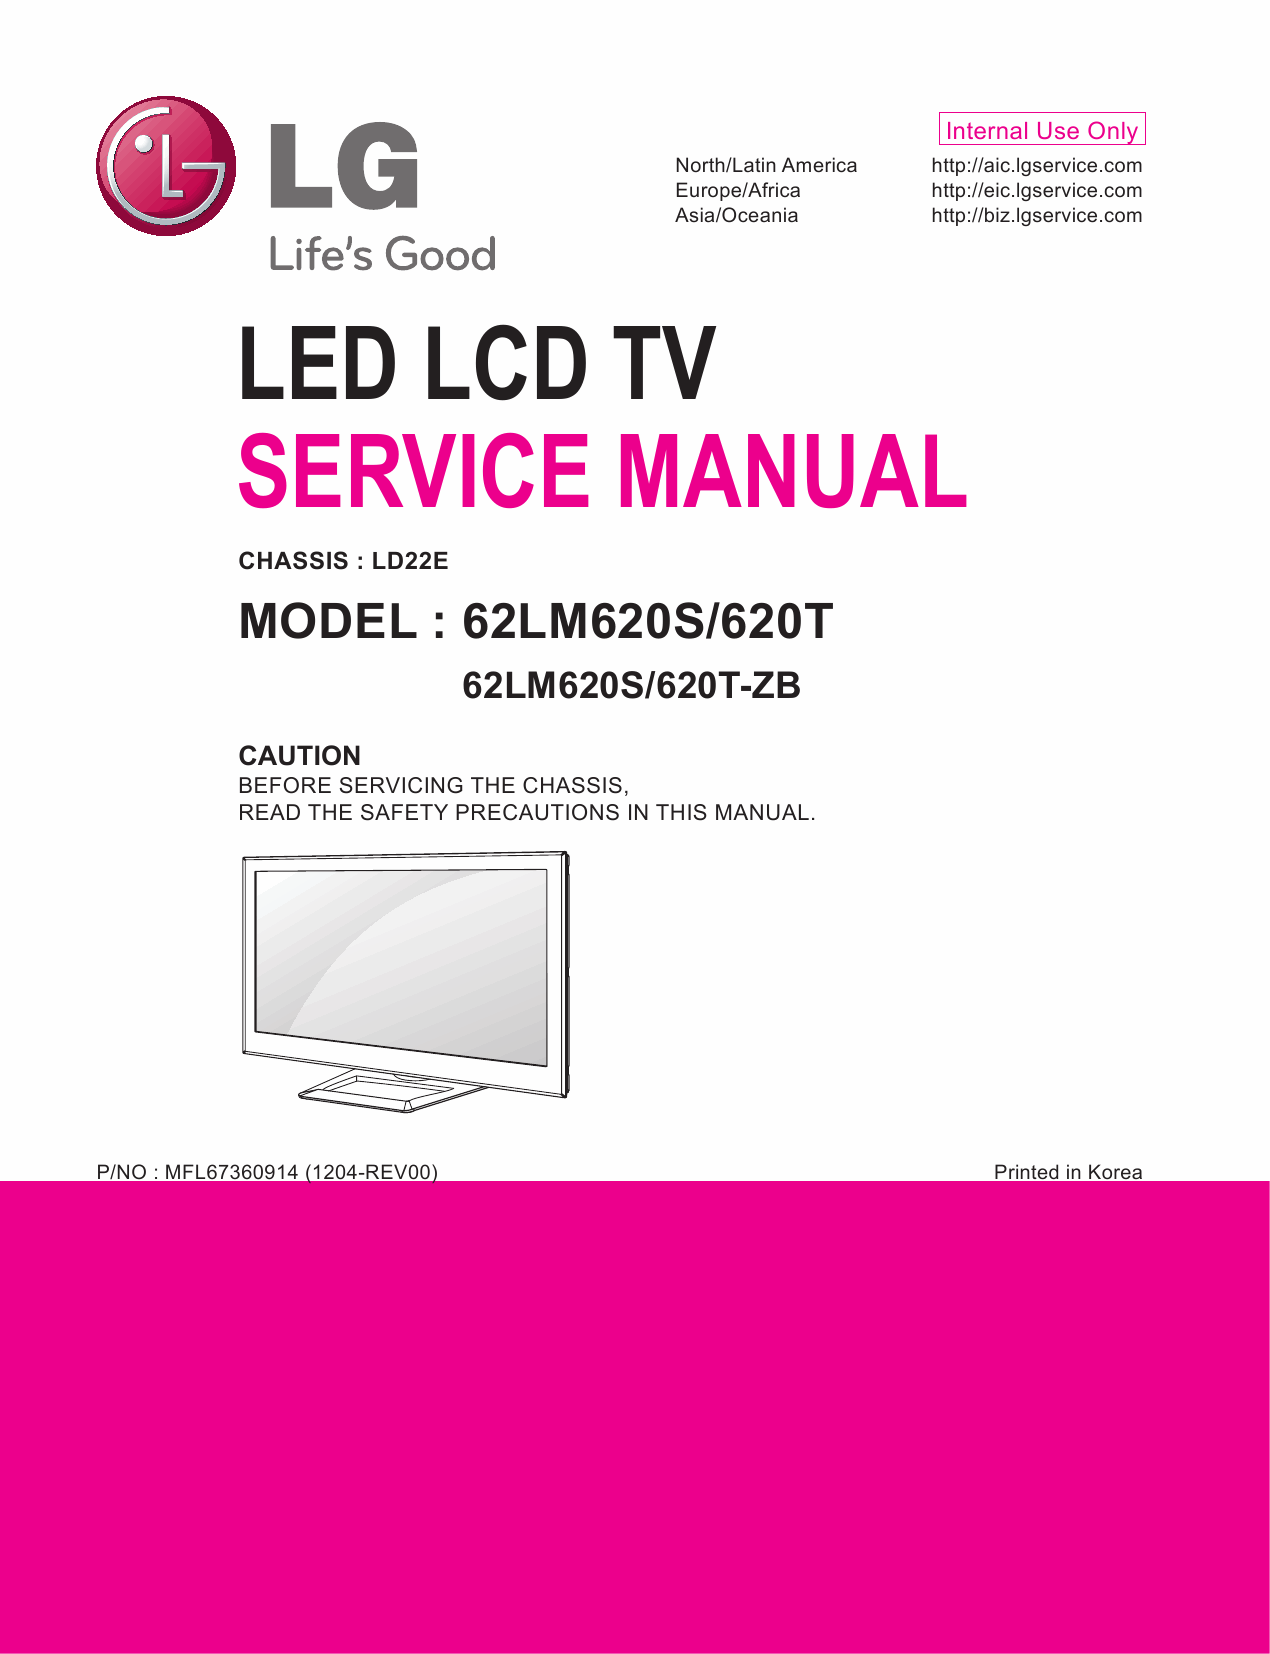 LG_LCD_TV_62LM620S_620T_Service_Manual_2012_Qmanual.com-1